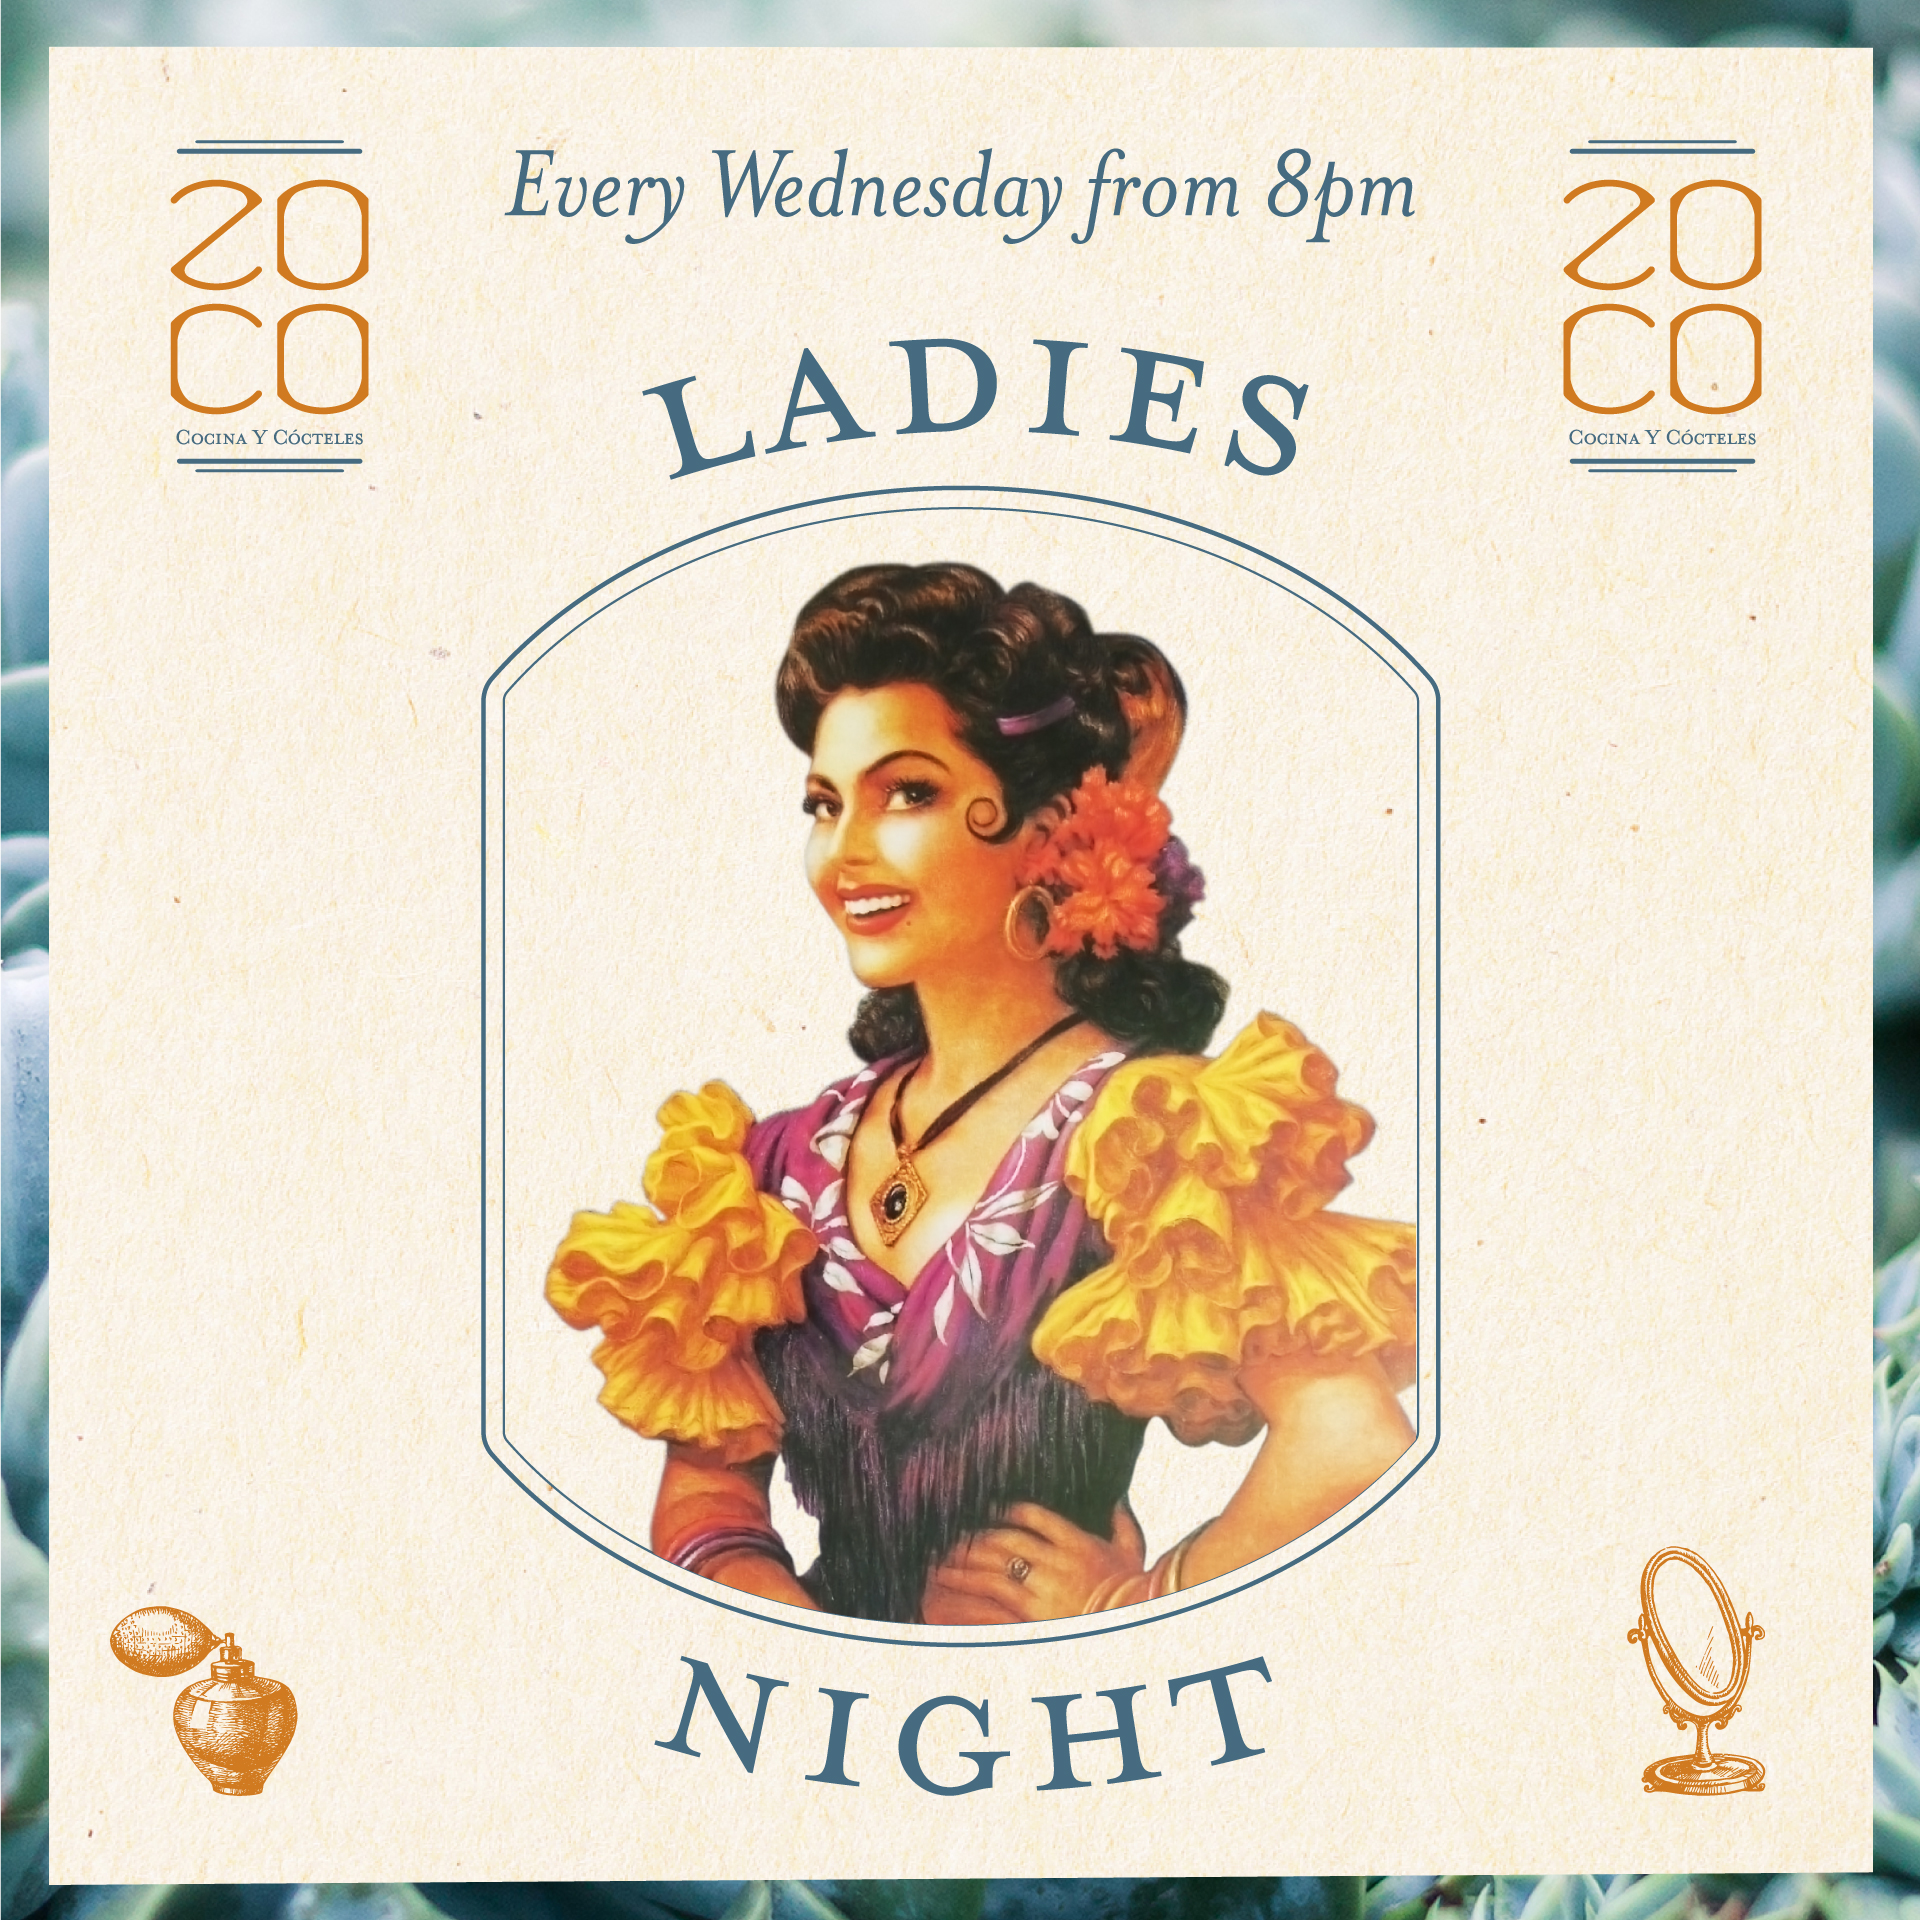 zoco_ladiesnight_pixed